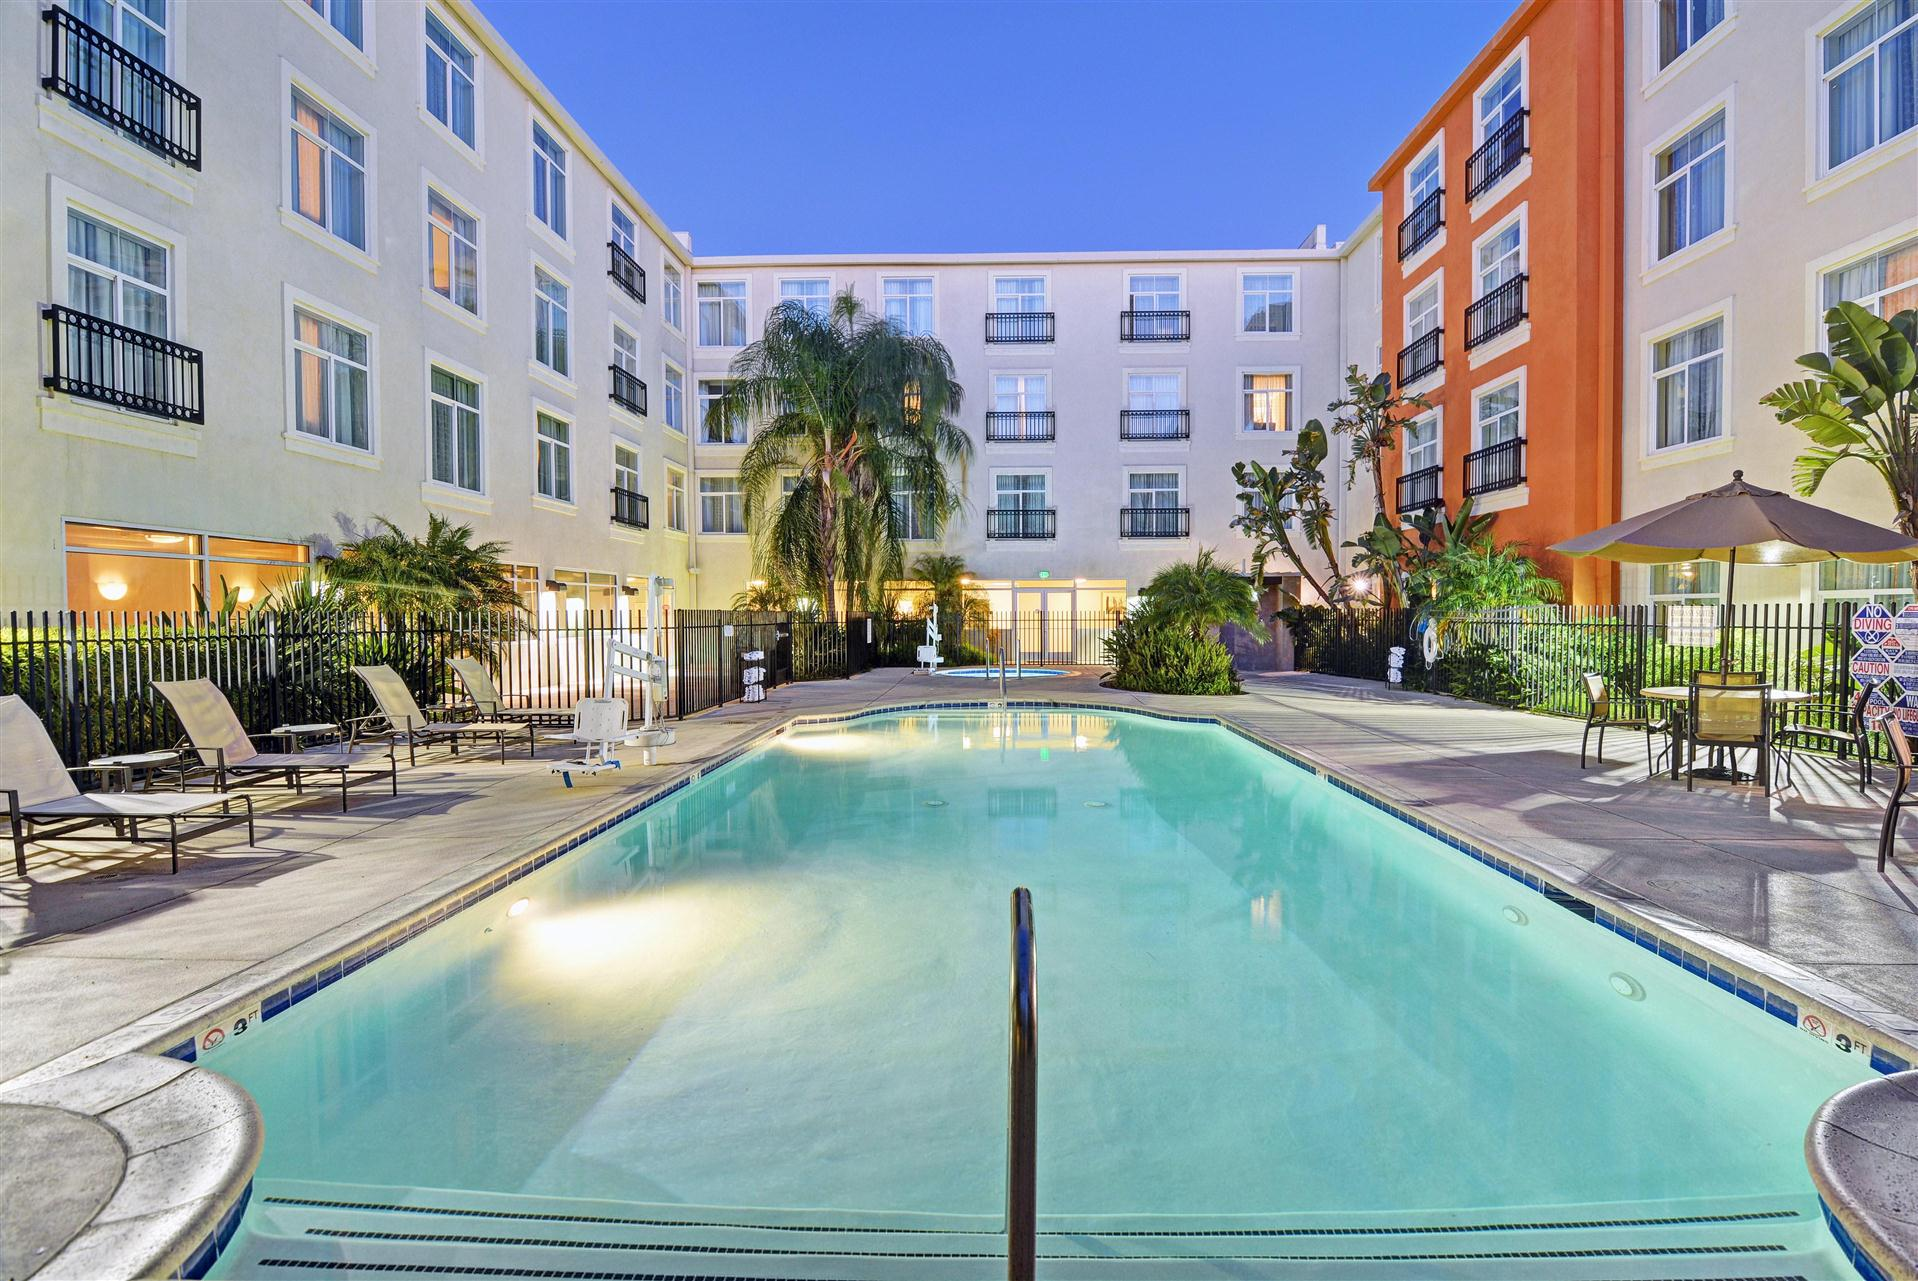 Meetings and events at Embassy Suites by Hilton Valencia